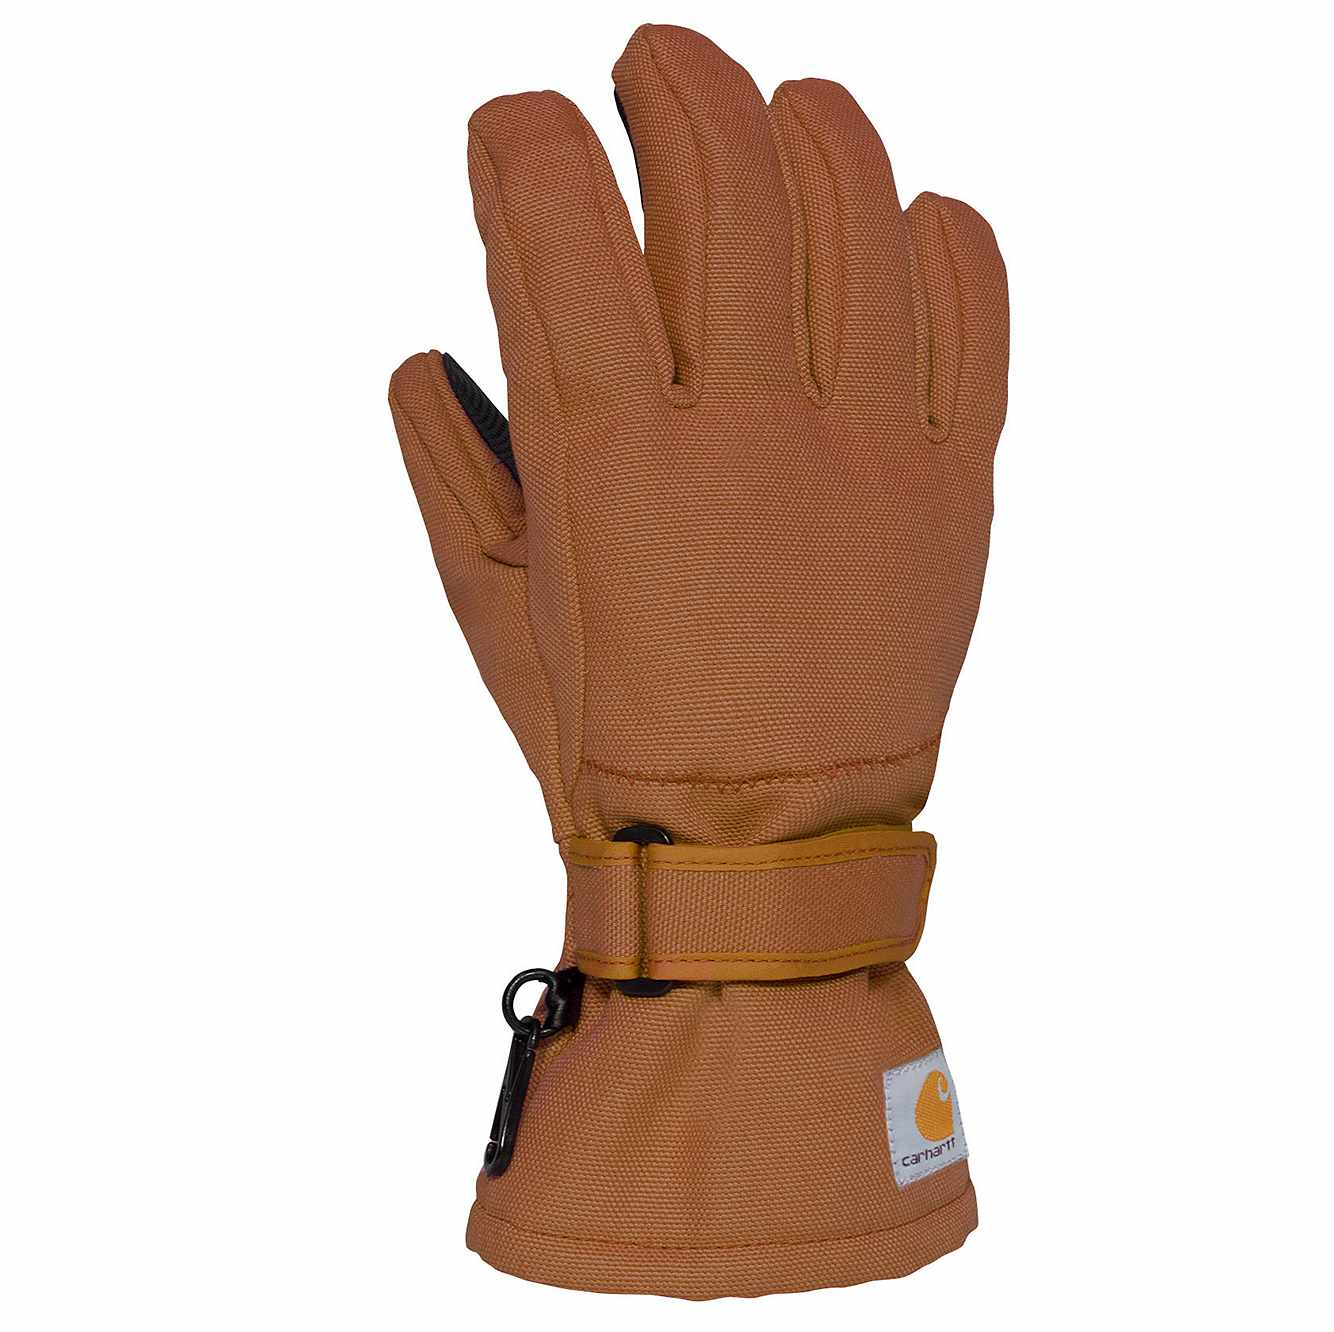 Picture of Duck Insulated Glove in Carhartt Brown